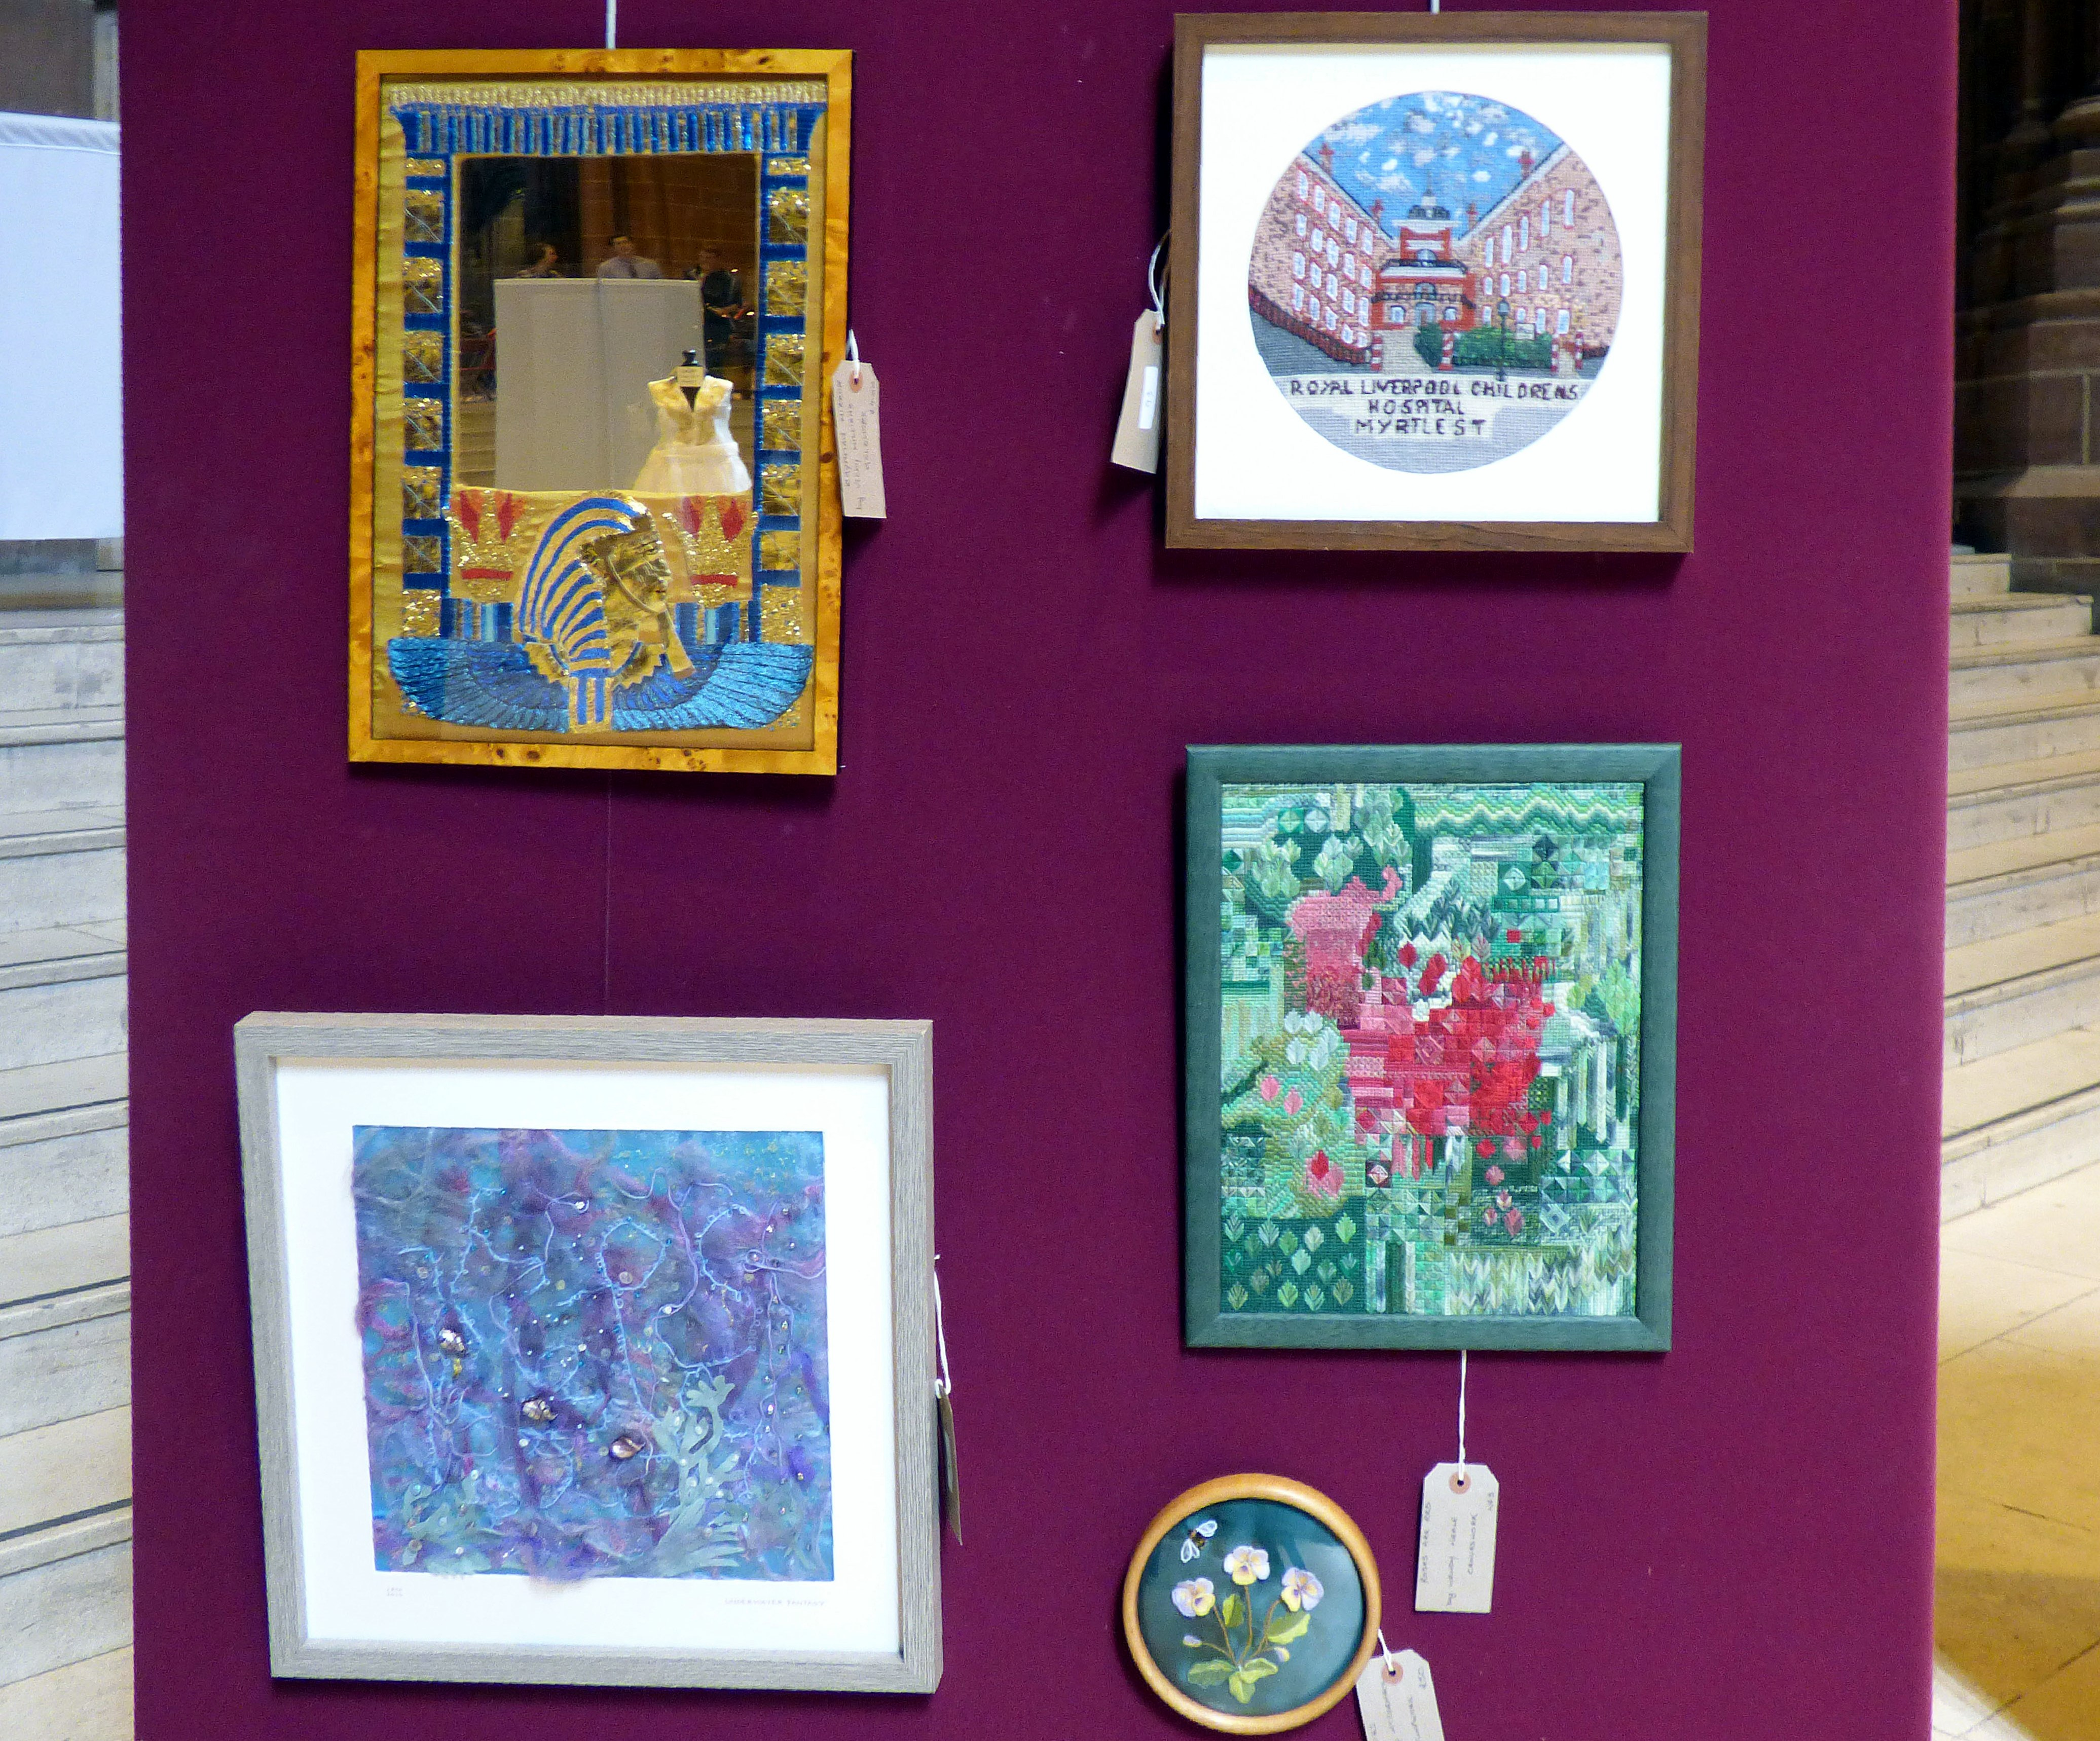 EGYPTIAN MIRROR by Vicky Williams, THE OLD ROYAL CHILDREN'S HOSPITAL by Kathy Green, ROSES ARE RED by Wendy Neale, UNDERWATER FANTASY by Jean Mather and PANSIES by Hilary McCormack at 60 Glorious Years exhibition 2016